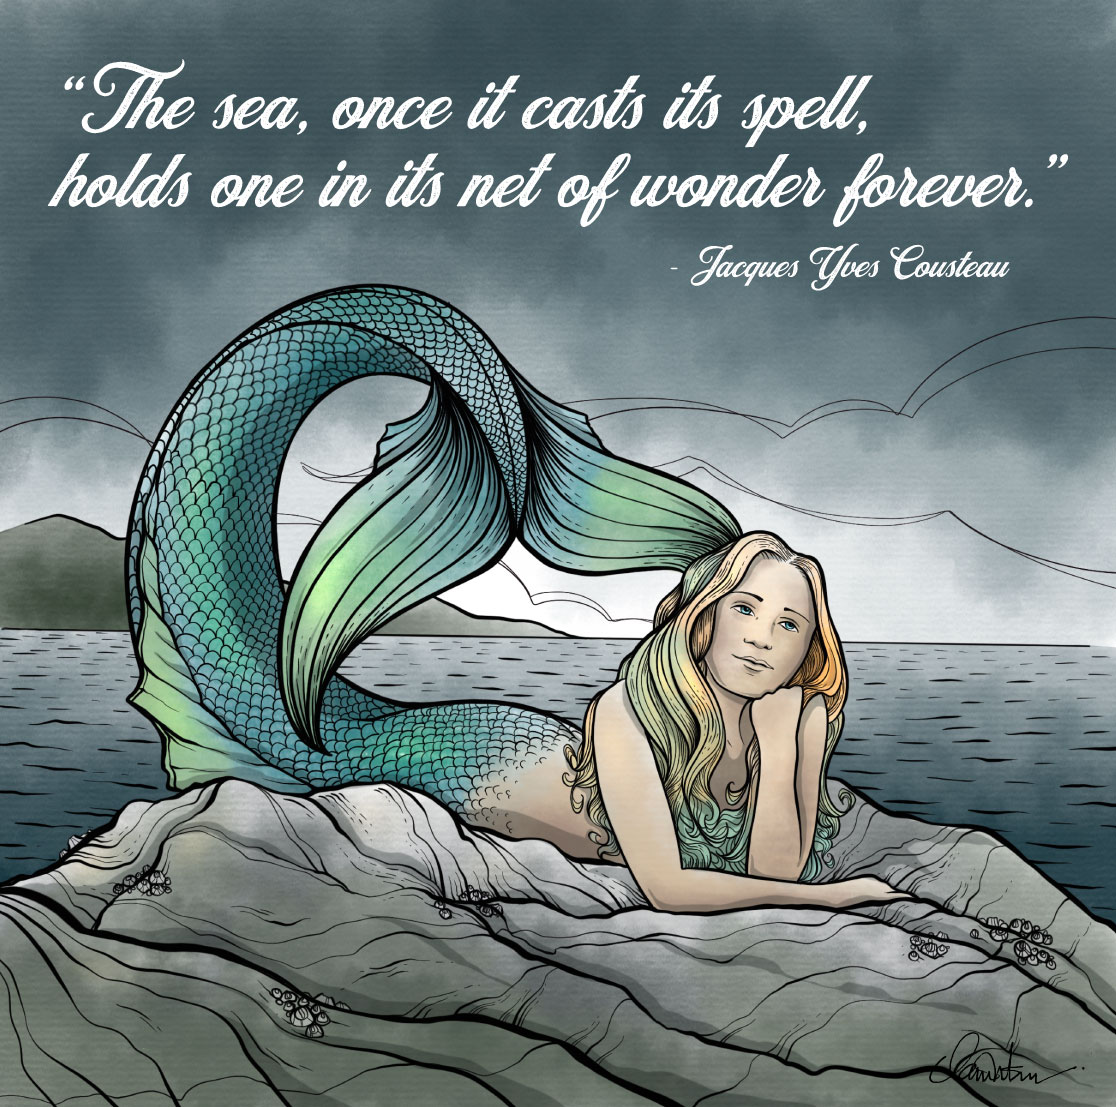 Mermaid-quote_72dpiweb.jpeg